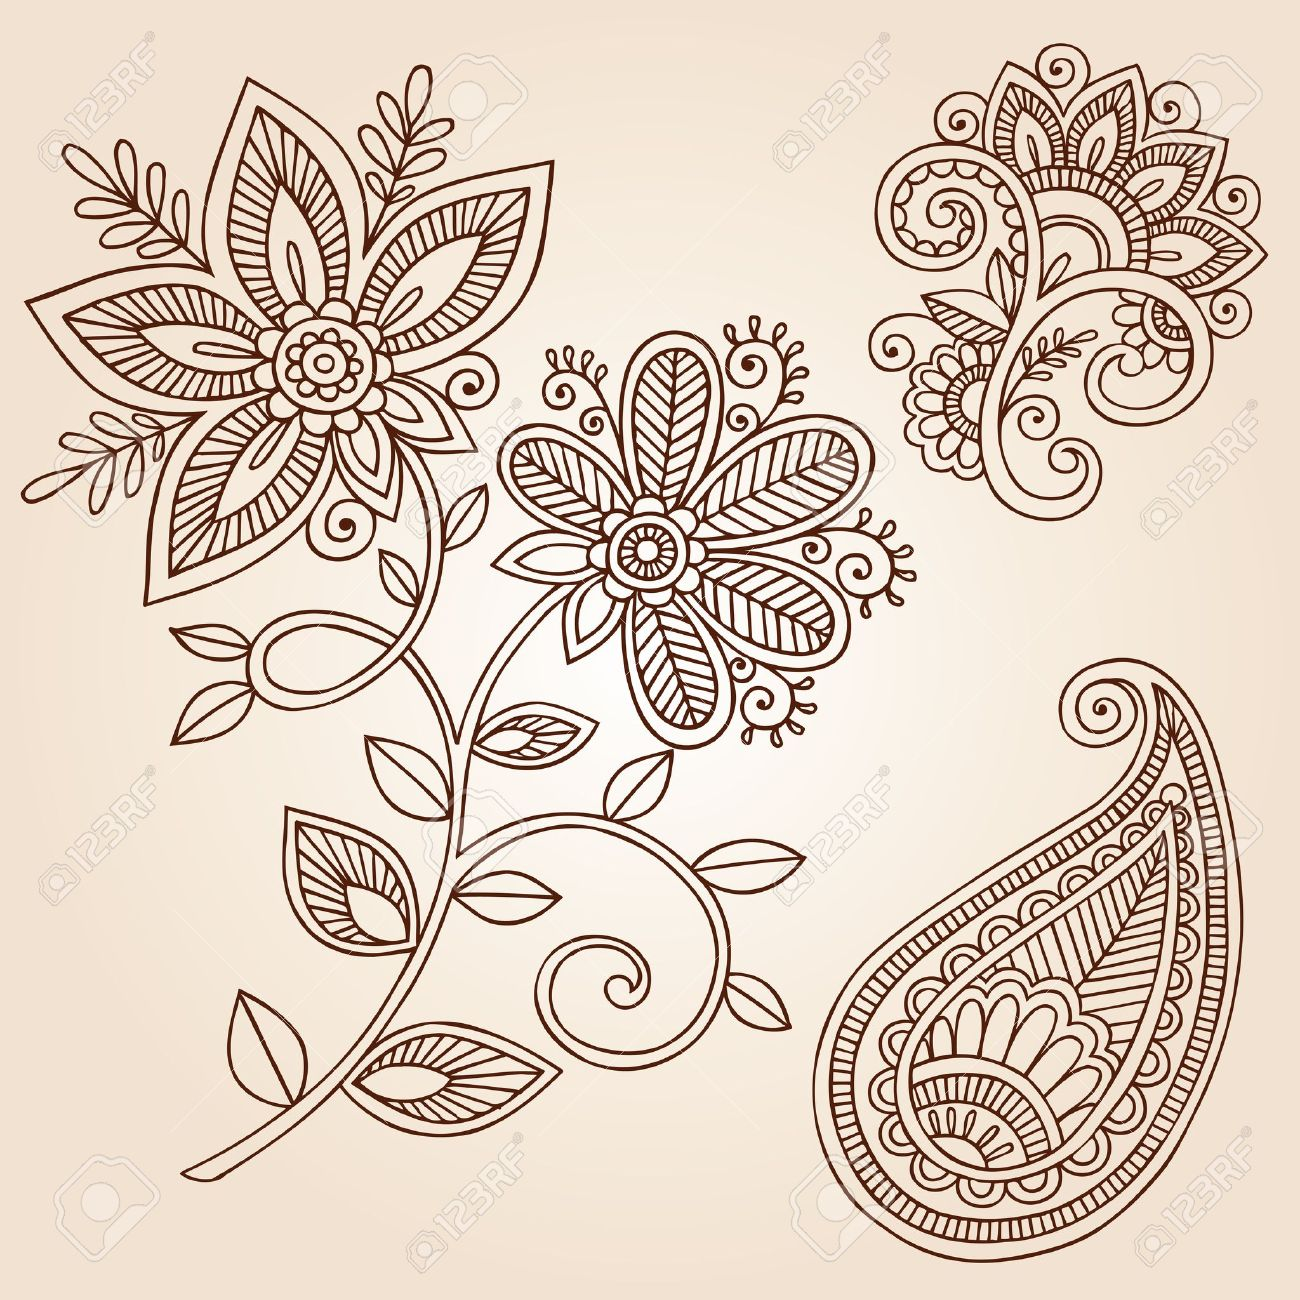 73,114 Henna Stock Illustrations, Cliparts And Royalty Free Henna ...